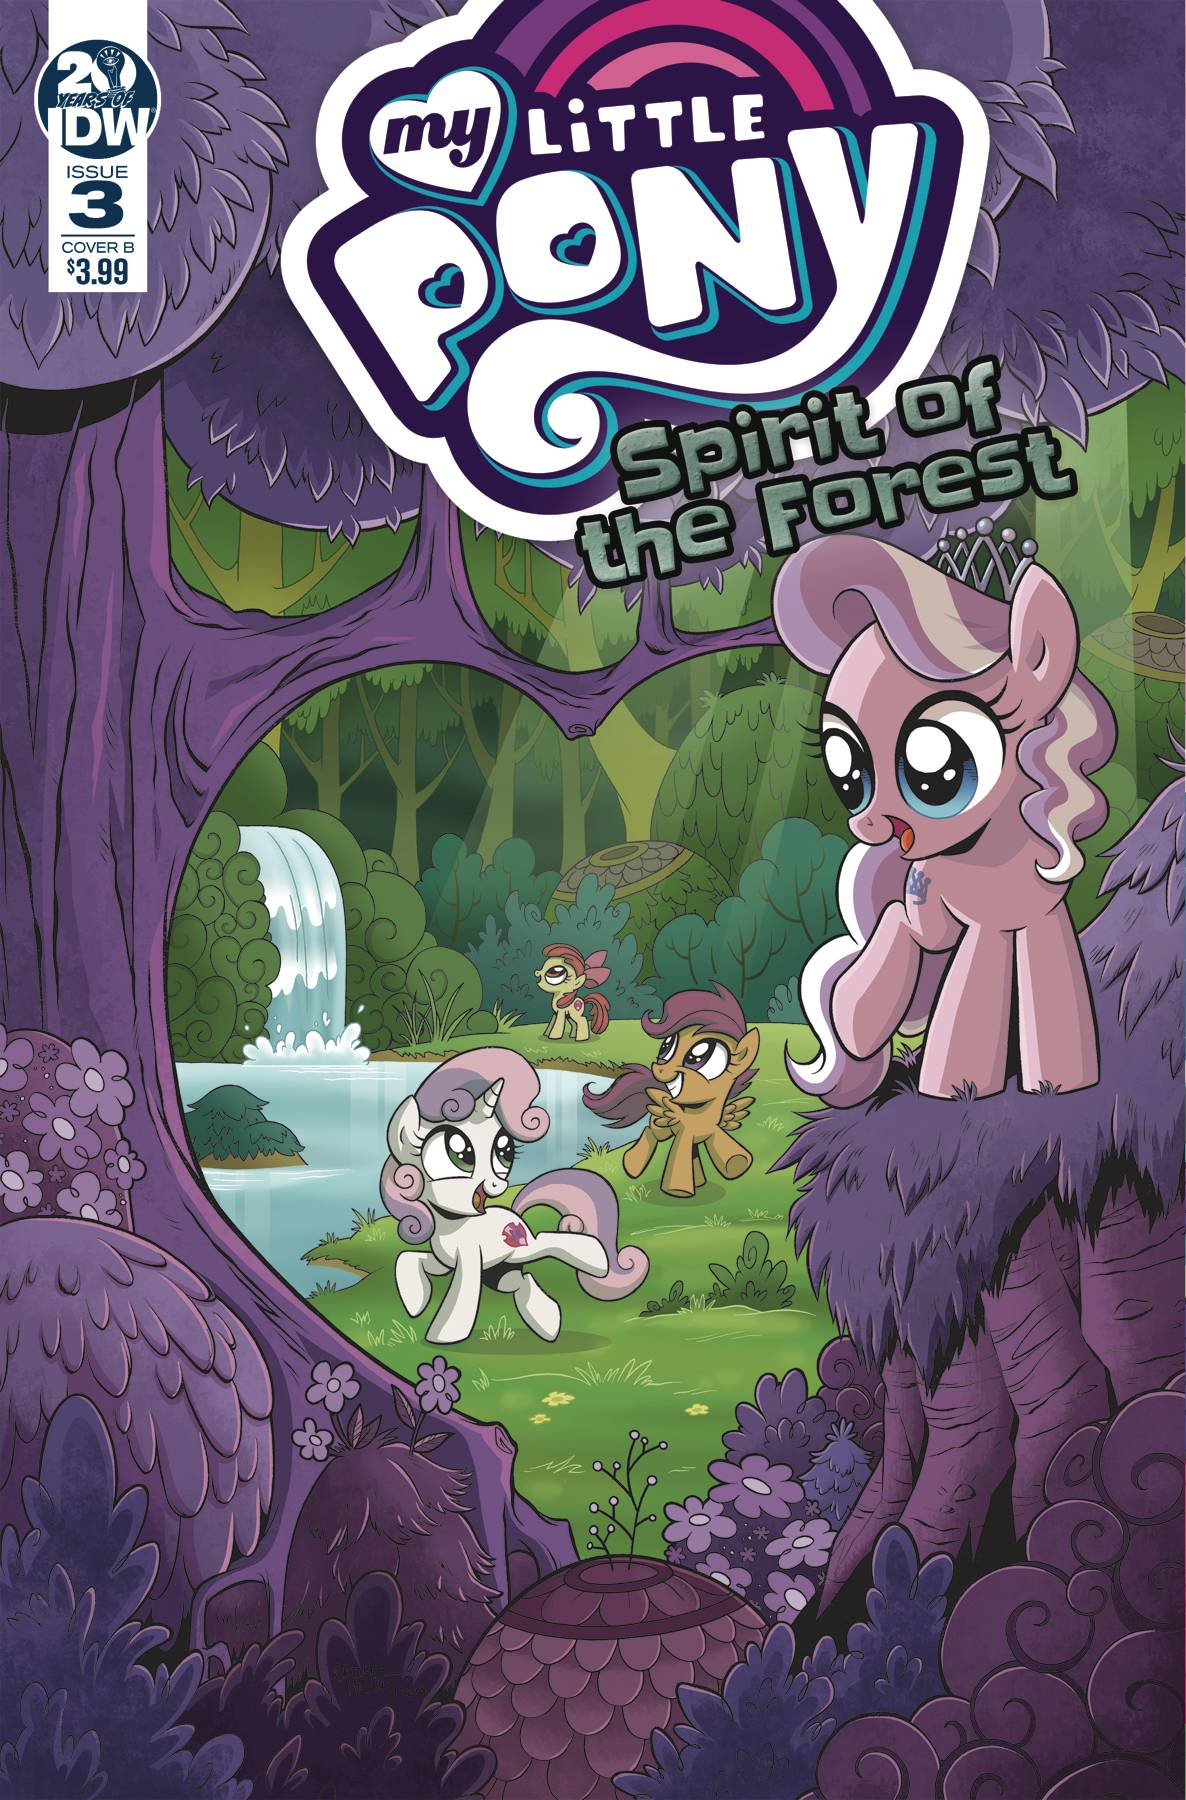 MY LITTLE PONY SPIRIT OF THE FOREST 3 of 3 CVR A HICKEY.jpg